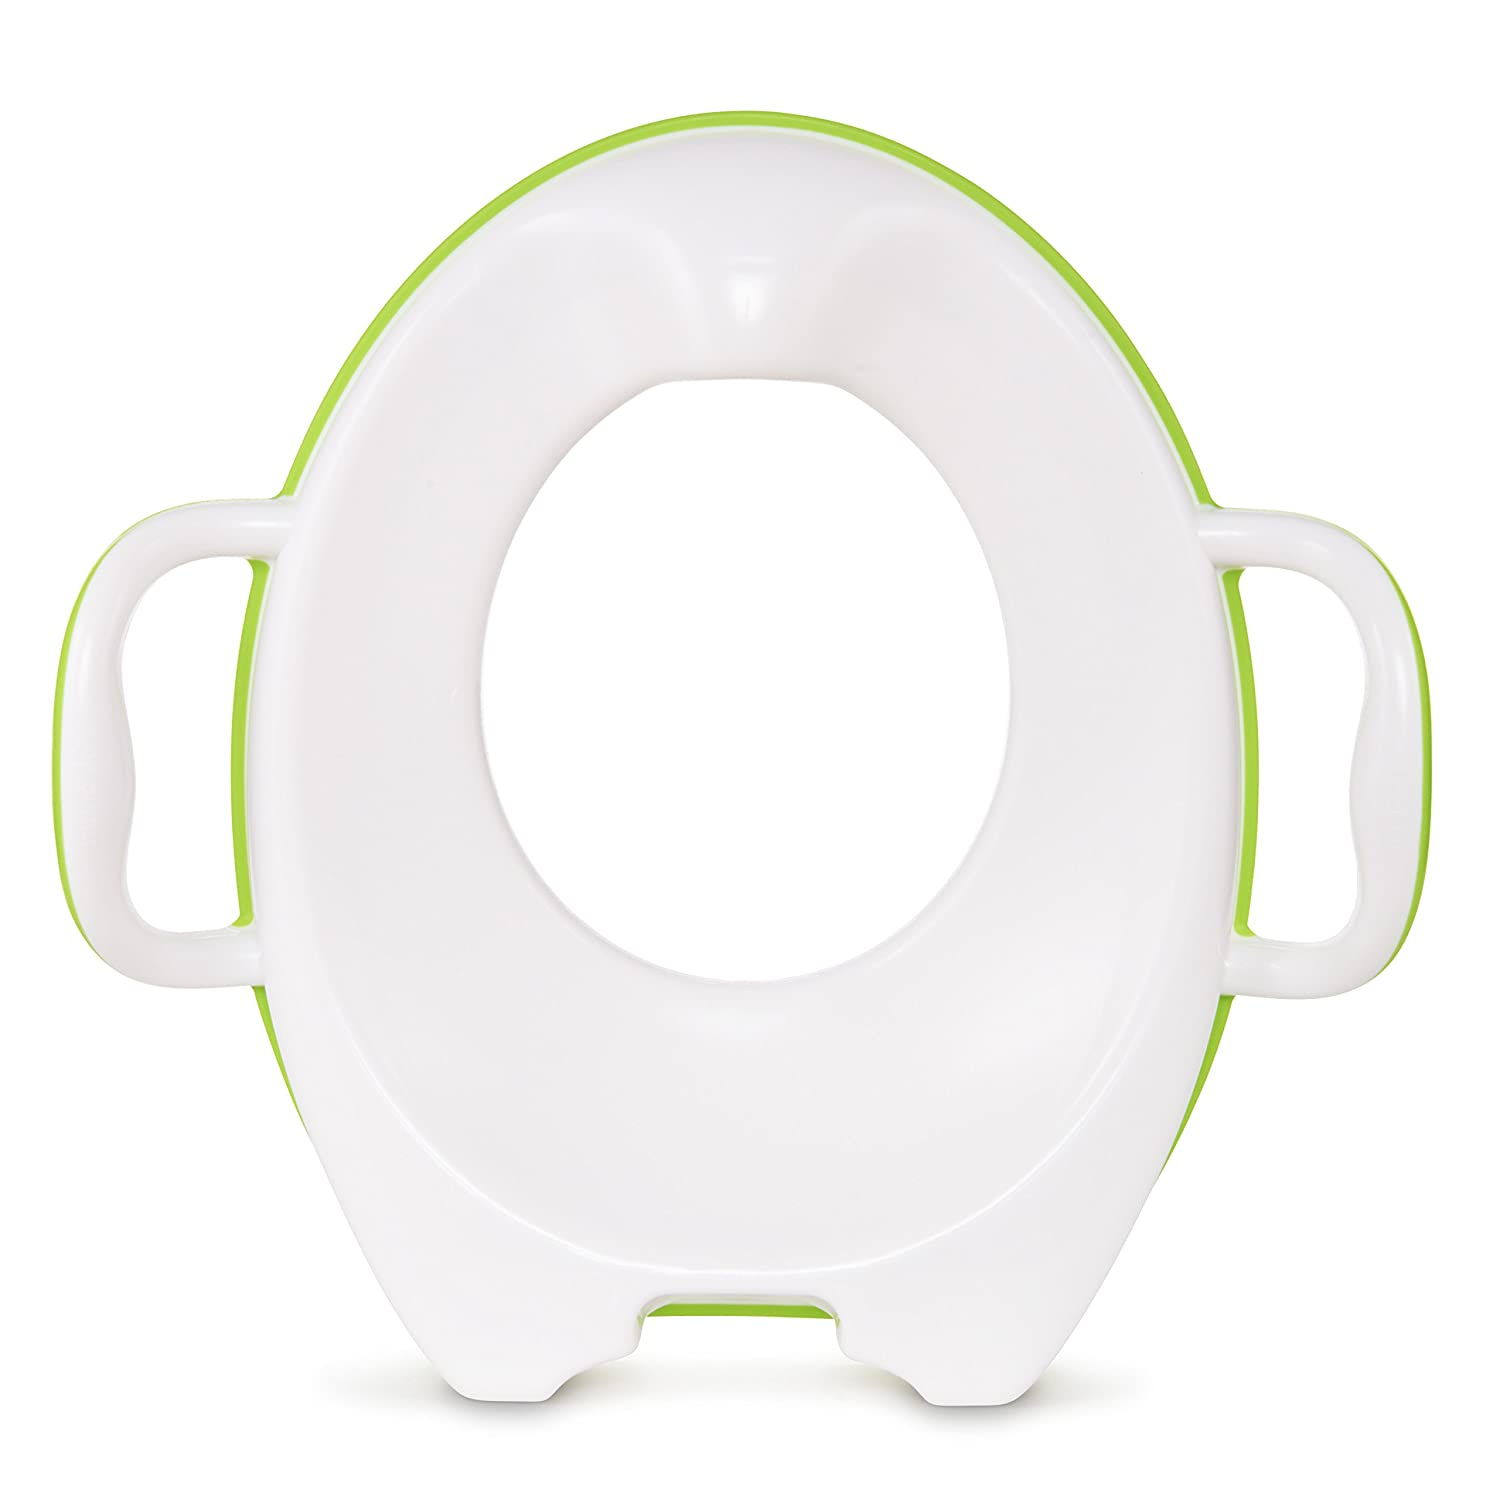 Munchkin Sturdy-Potty Seat (Colour May Vary) 15983